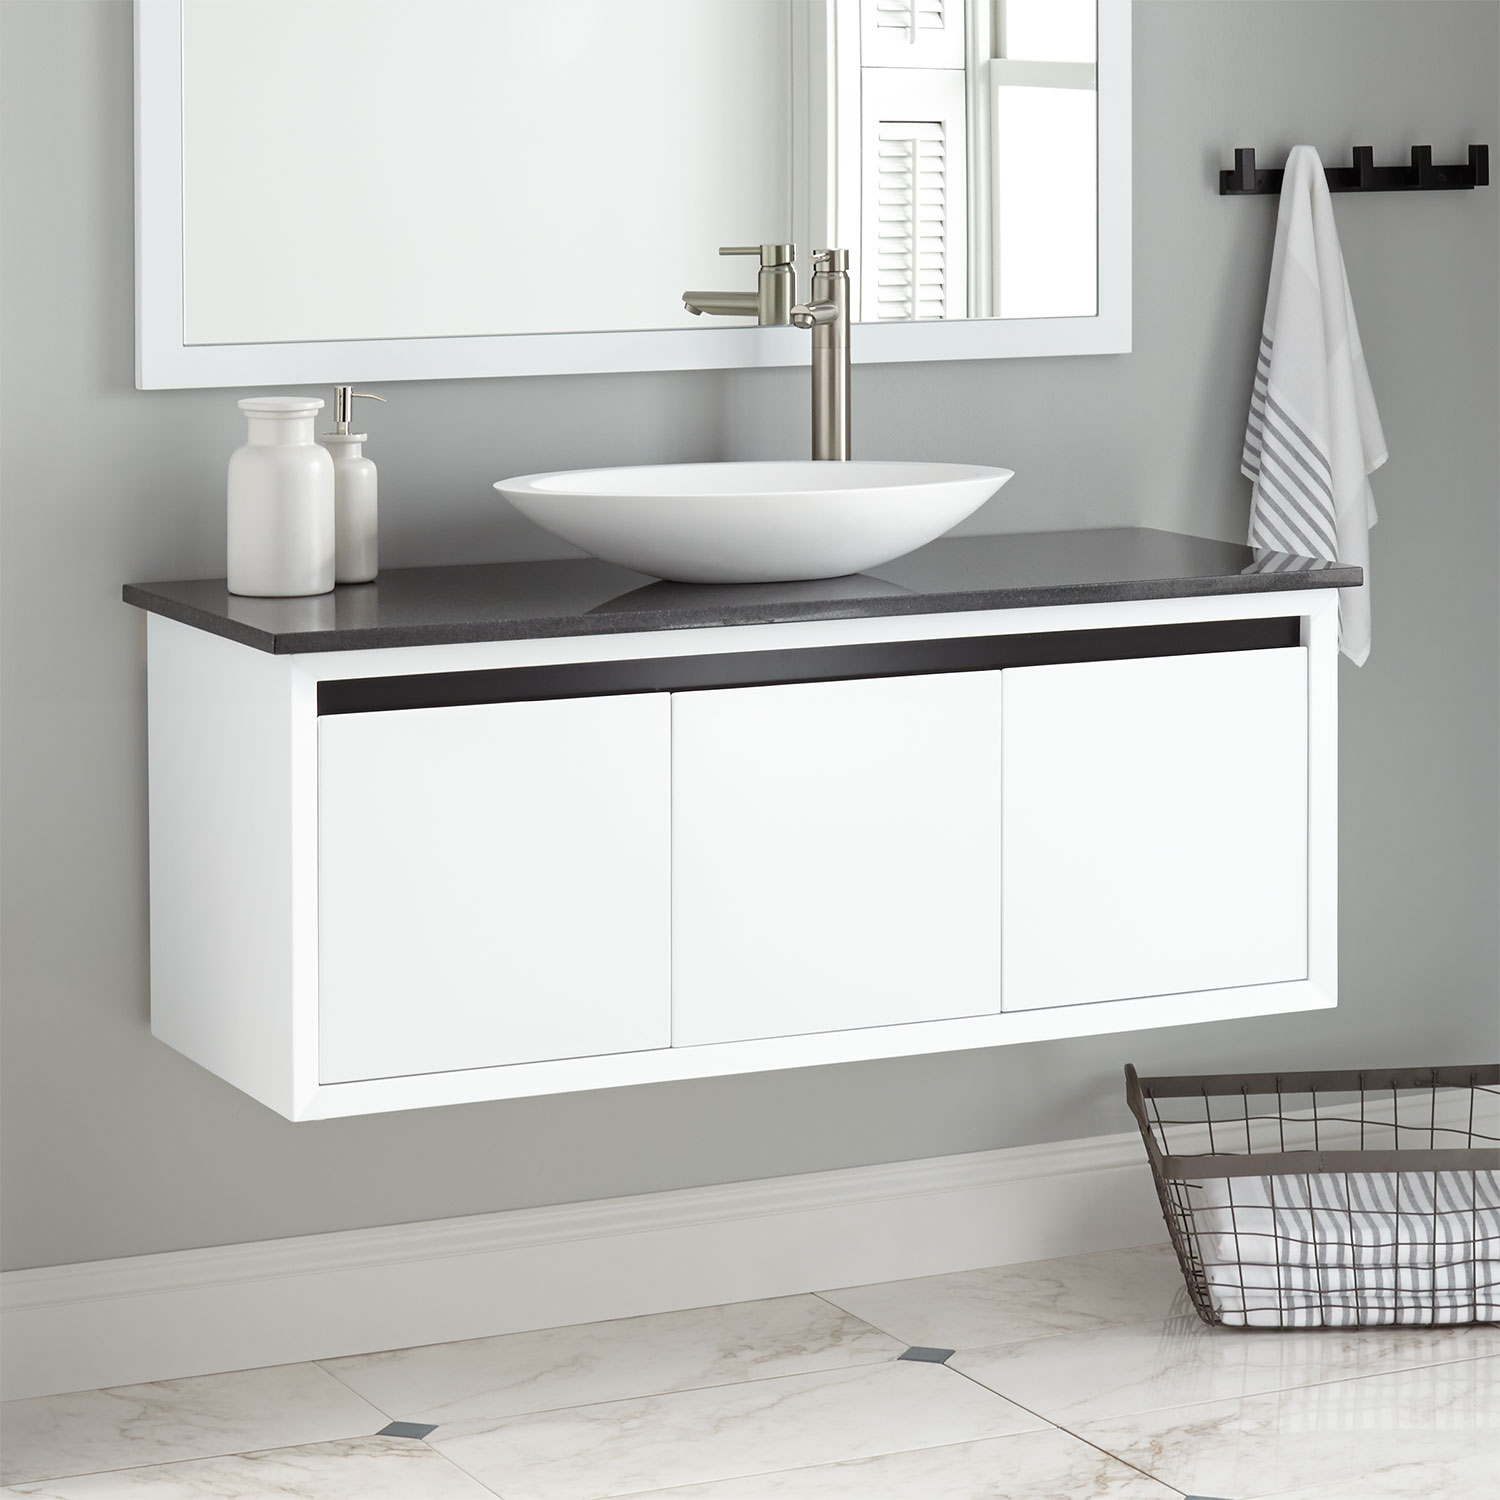 floating bathroom vanity signature hardware wall mount cabinet white vessel backsplash shelves cottee sink pipe clamp shelf oak fire kitchen pantry storage containers open